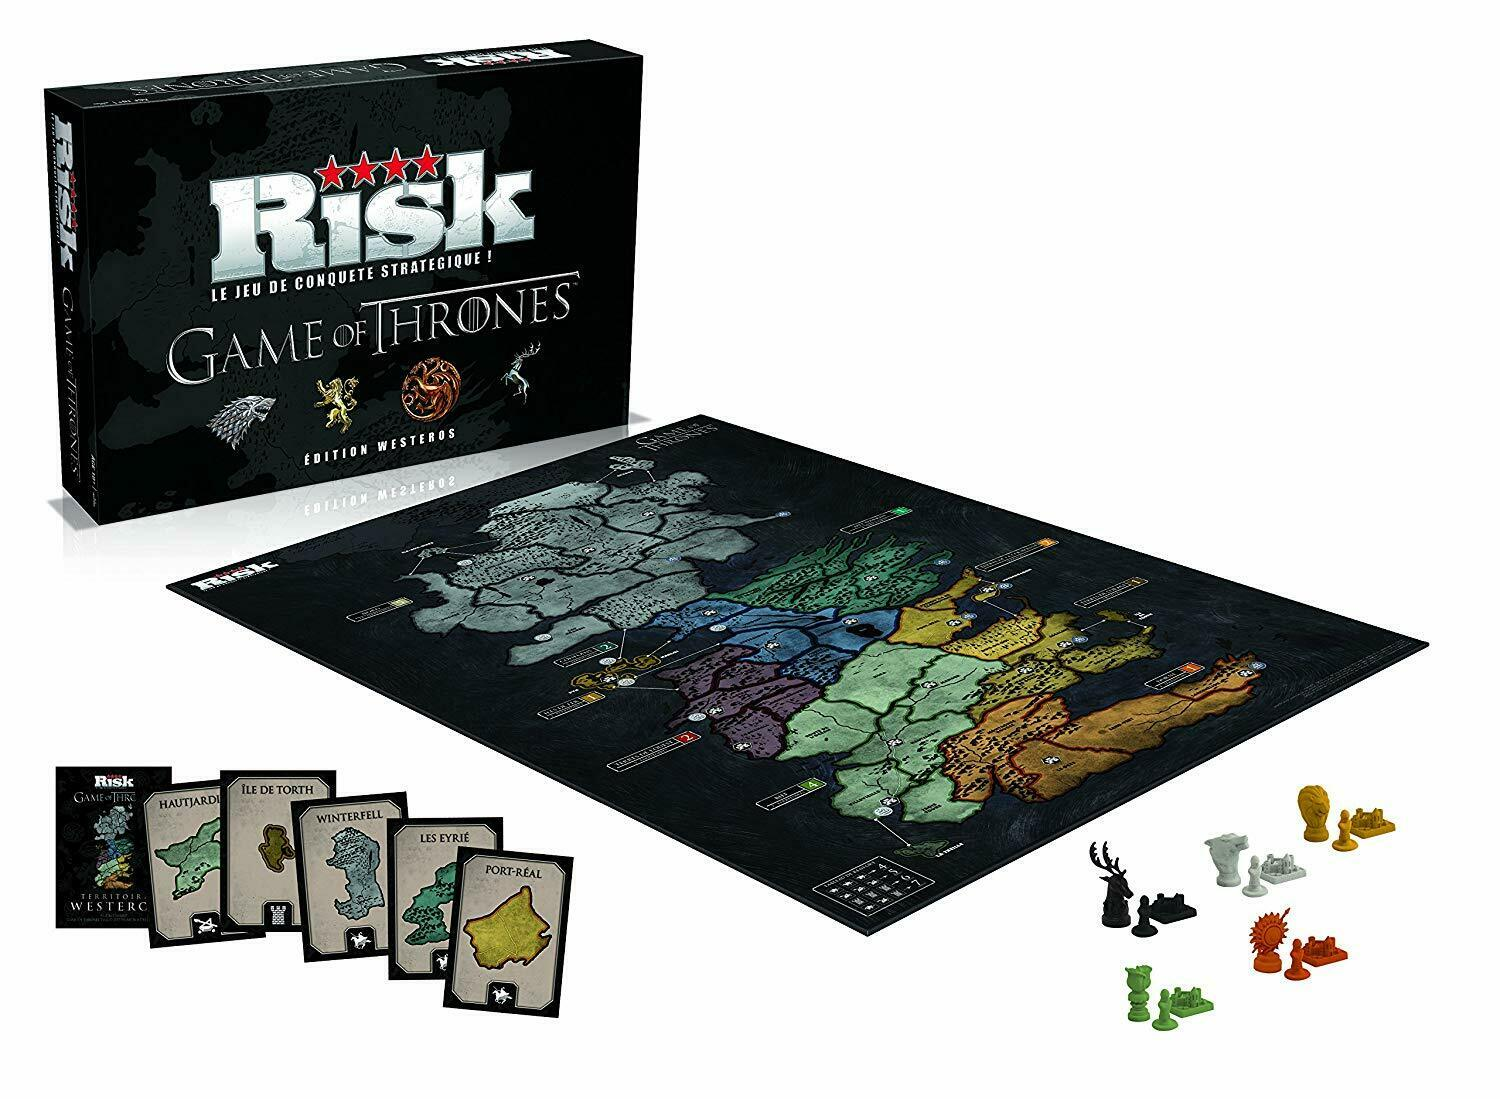 NEUF - Risk Game of Thrones - Edition Westeros